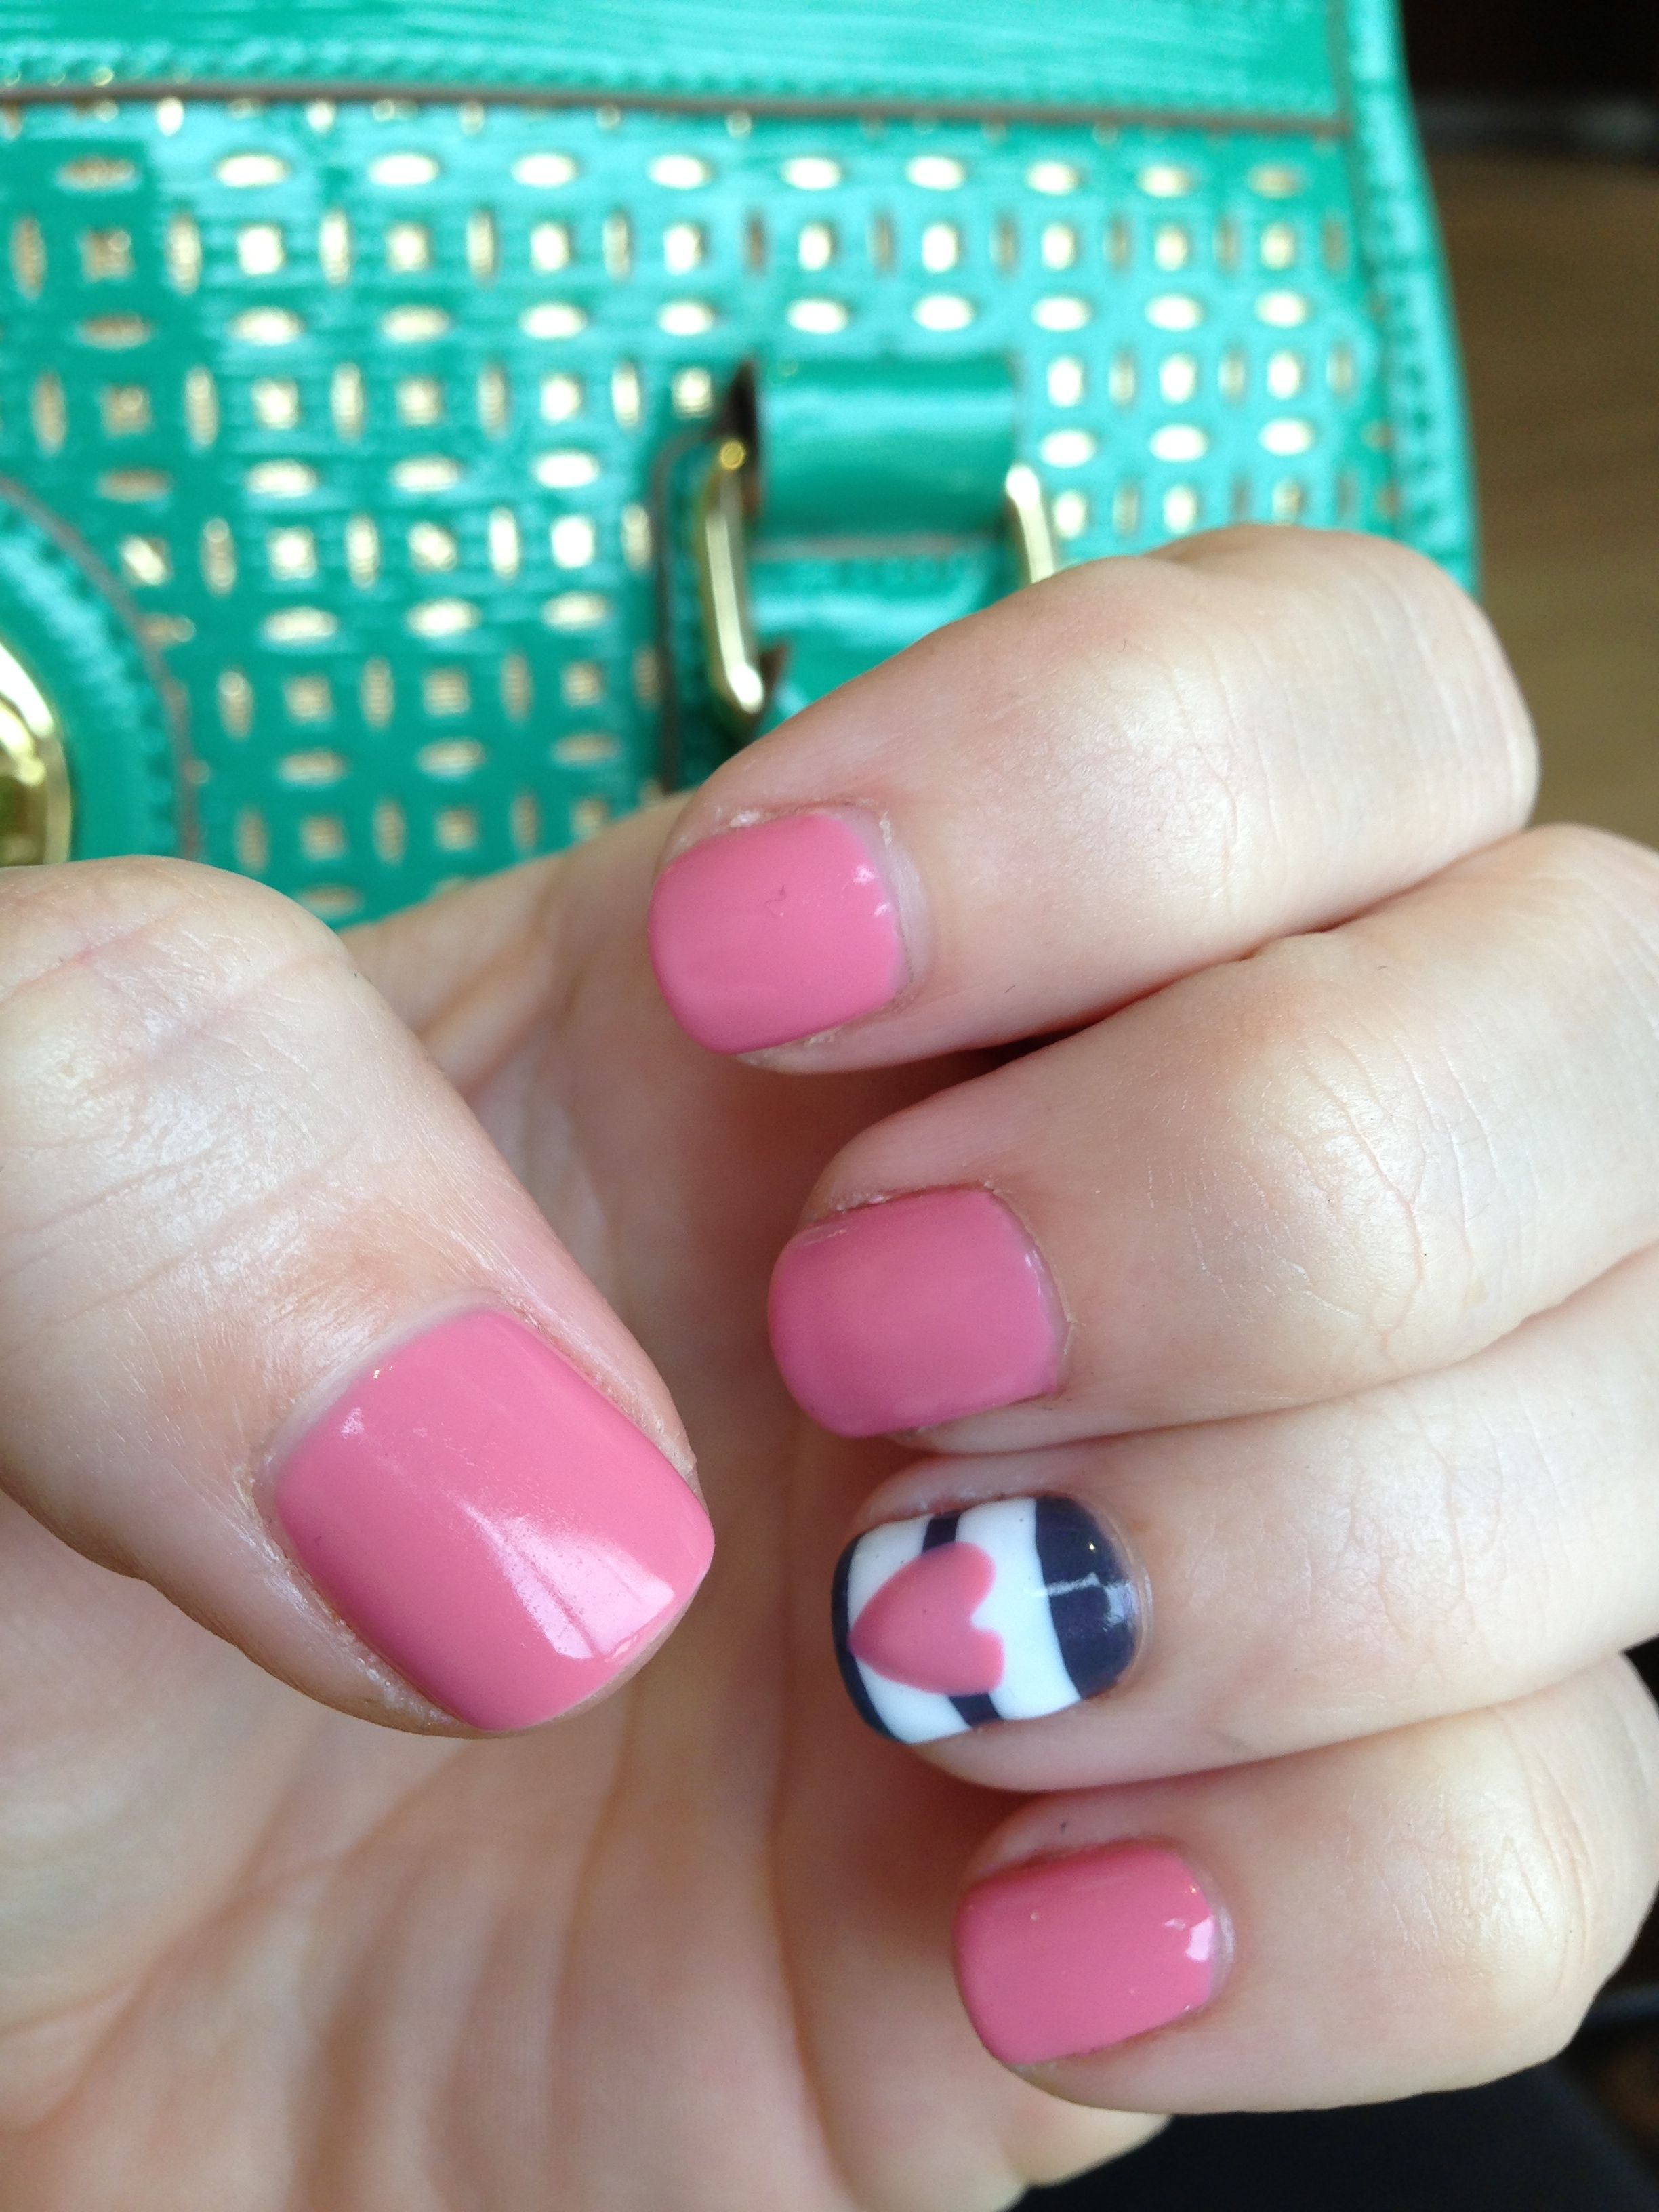 Nails heart with stripe design nail designs and ideas nails heart with stripe design prinsesfo Gallery